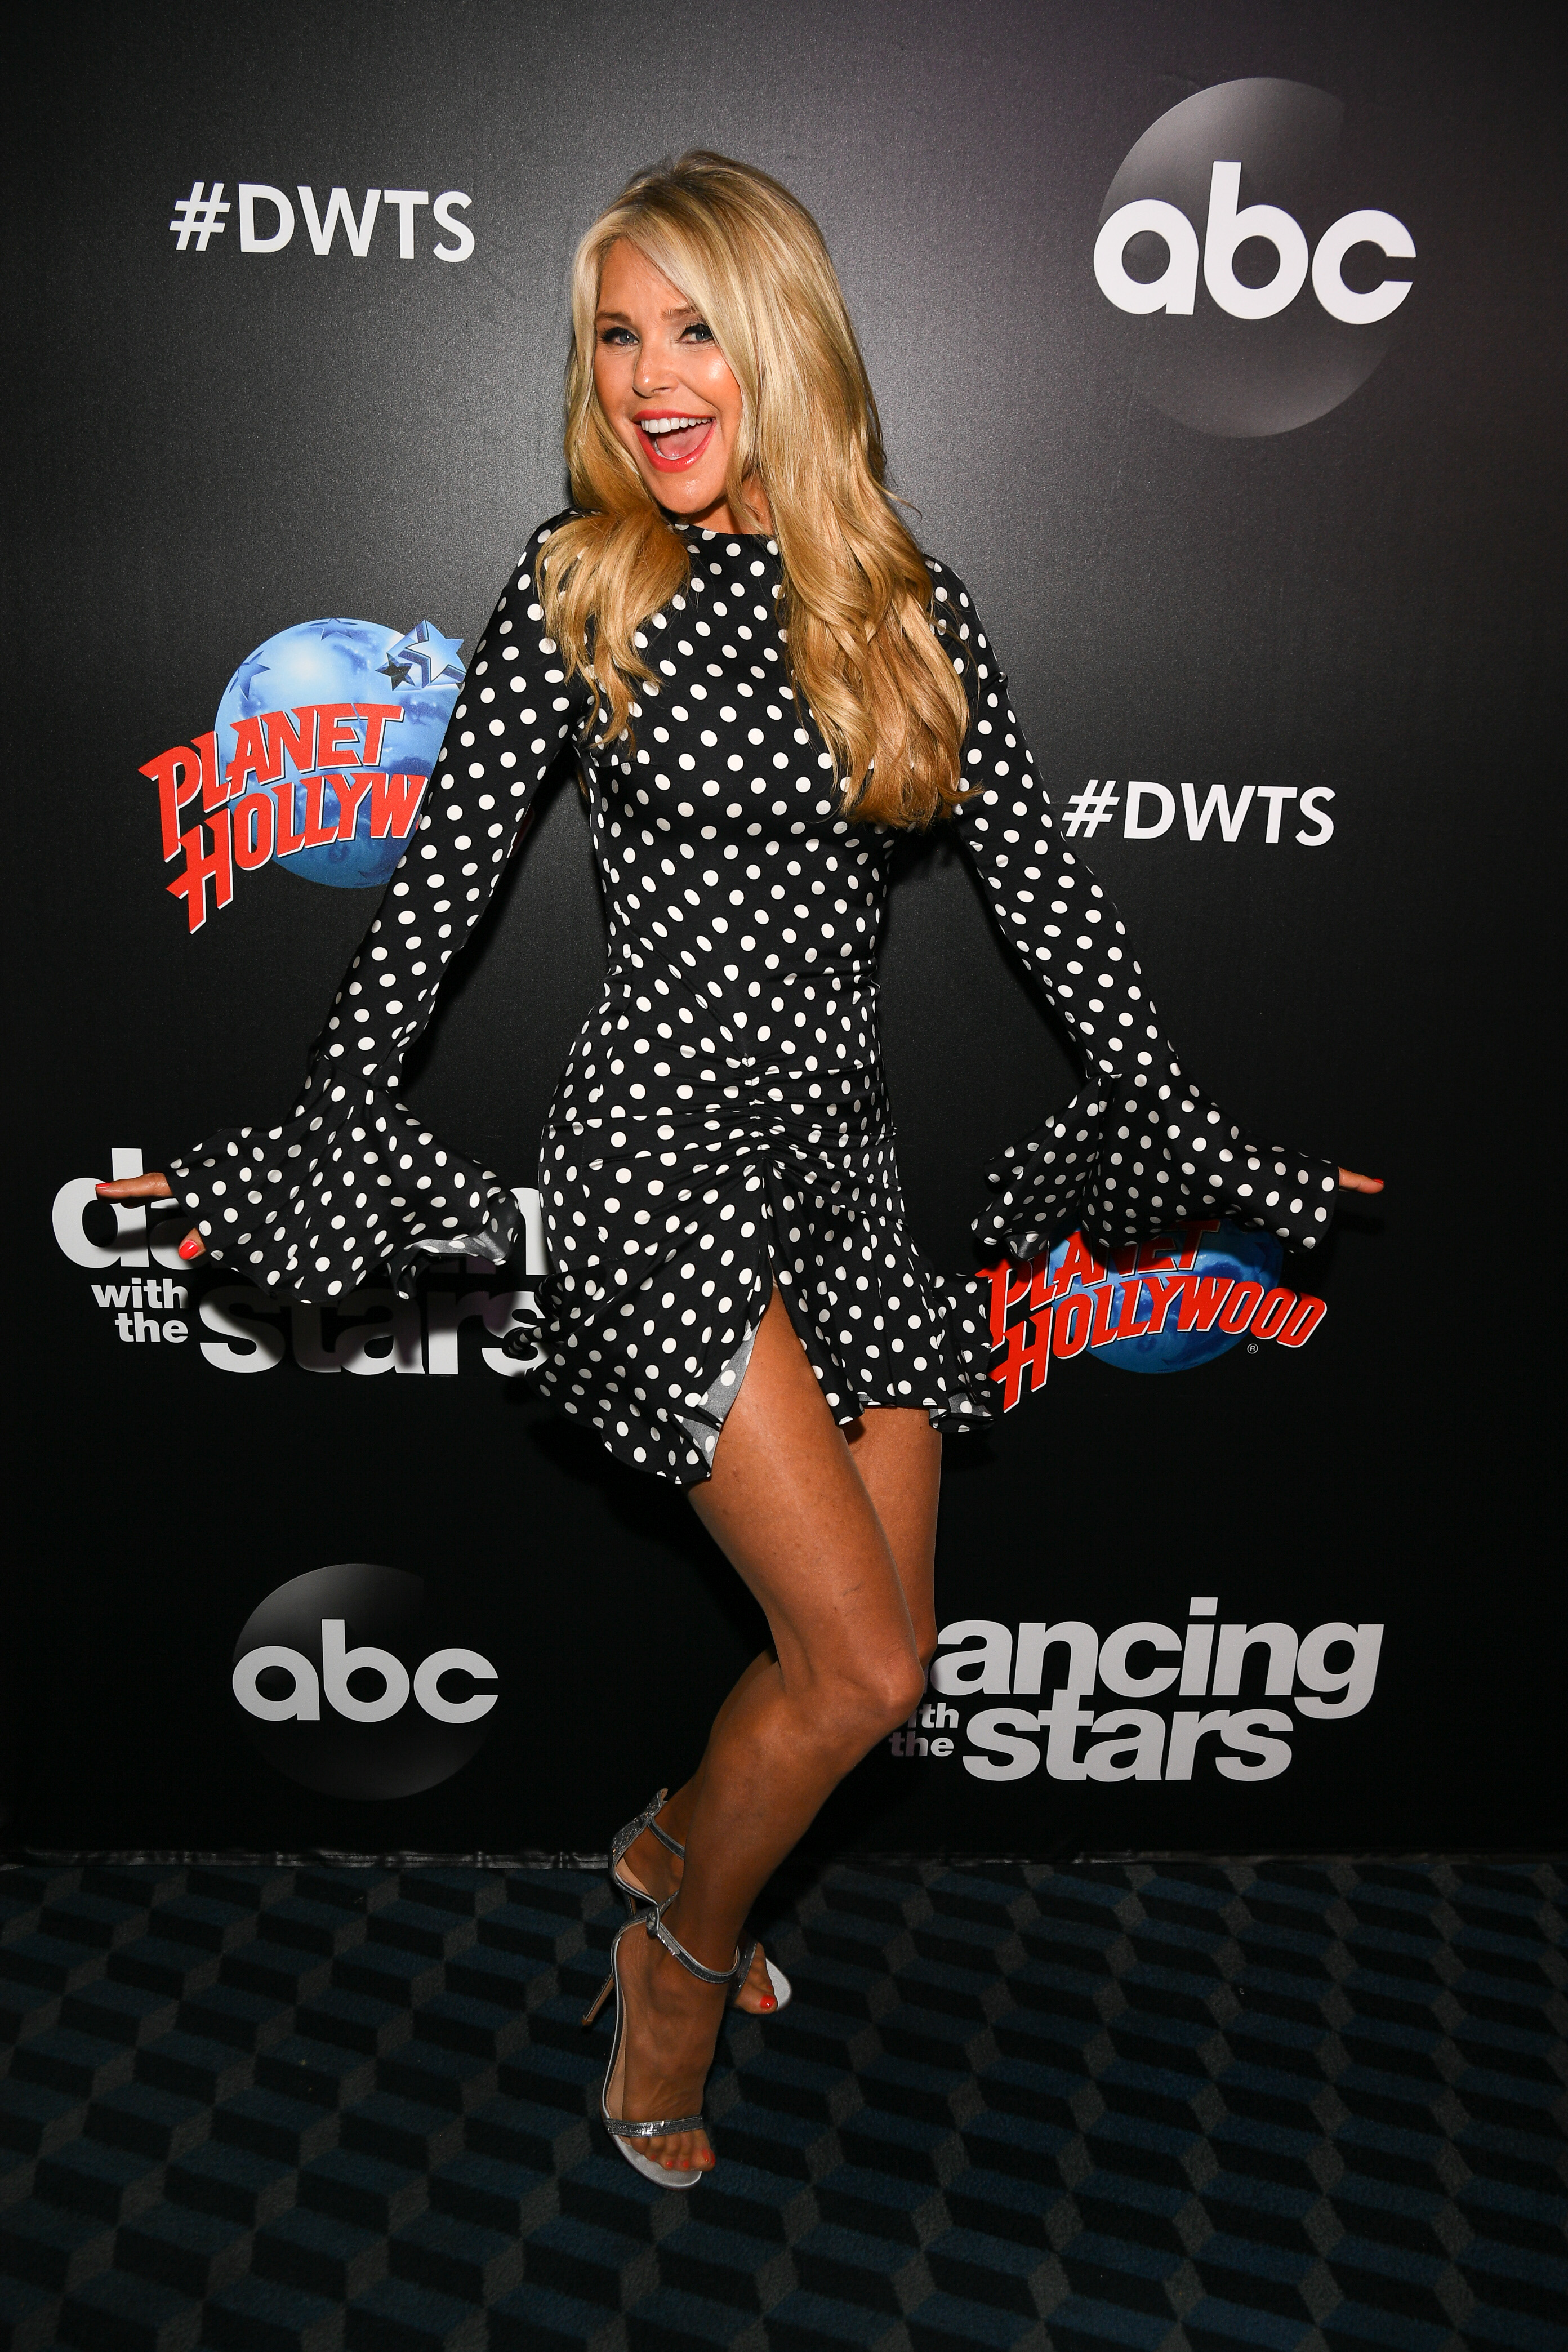 Christie Brinkley, looks, dancing with the stars